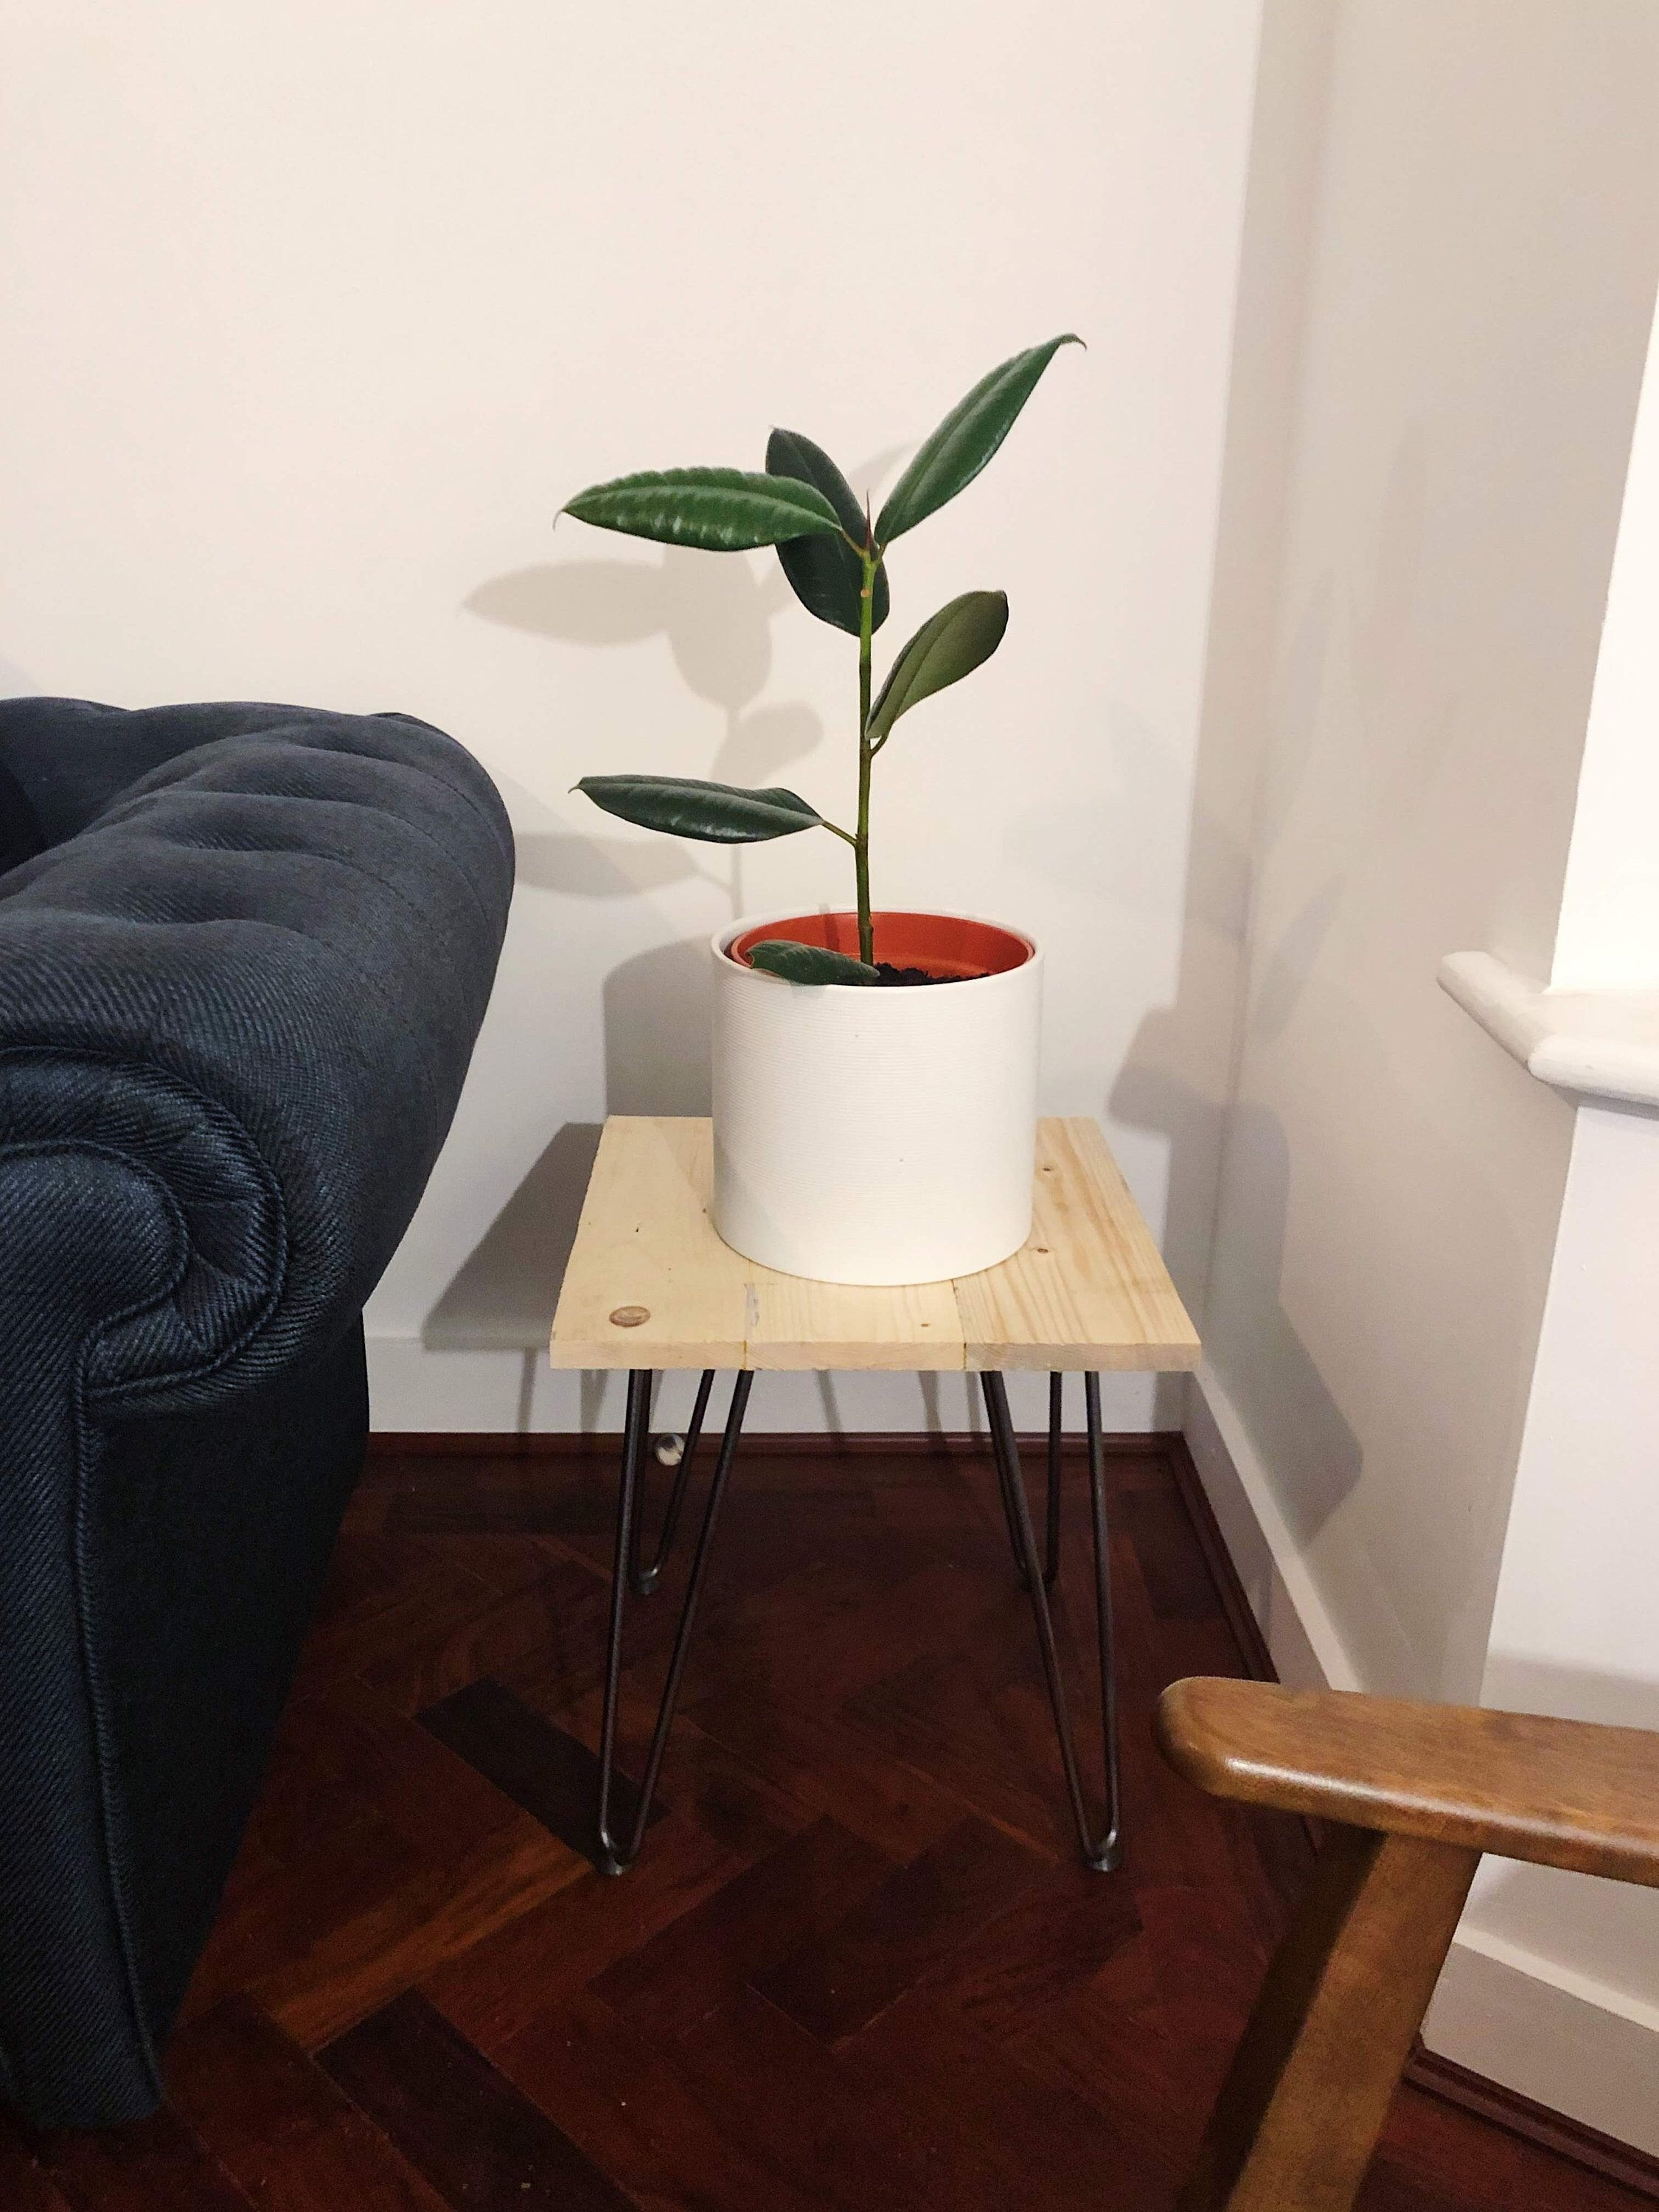 Awesome Stand Wooden Plant Ideas17